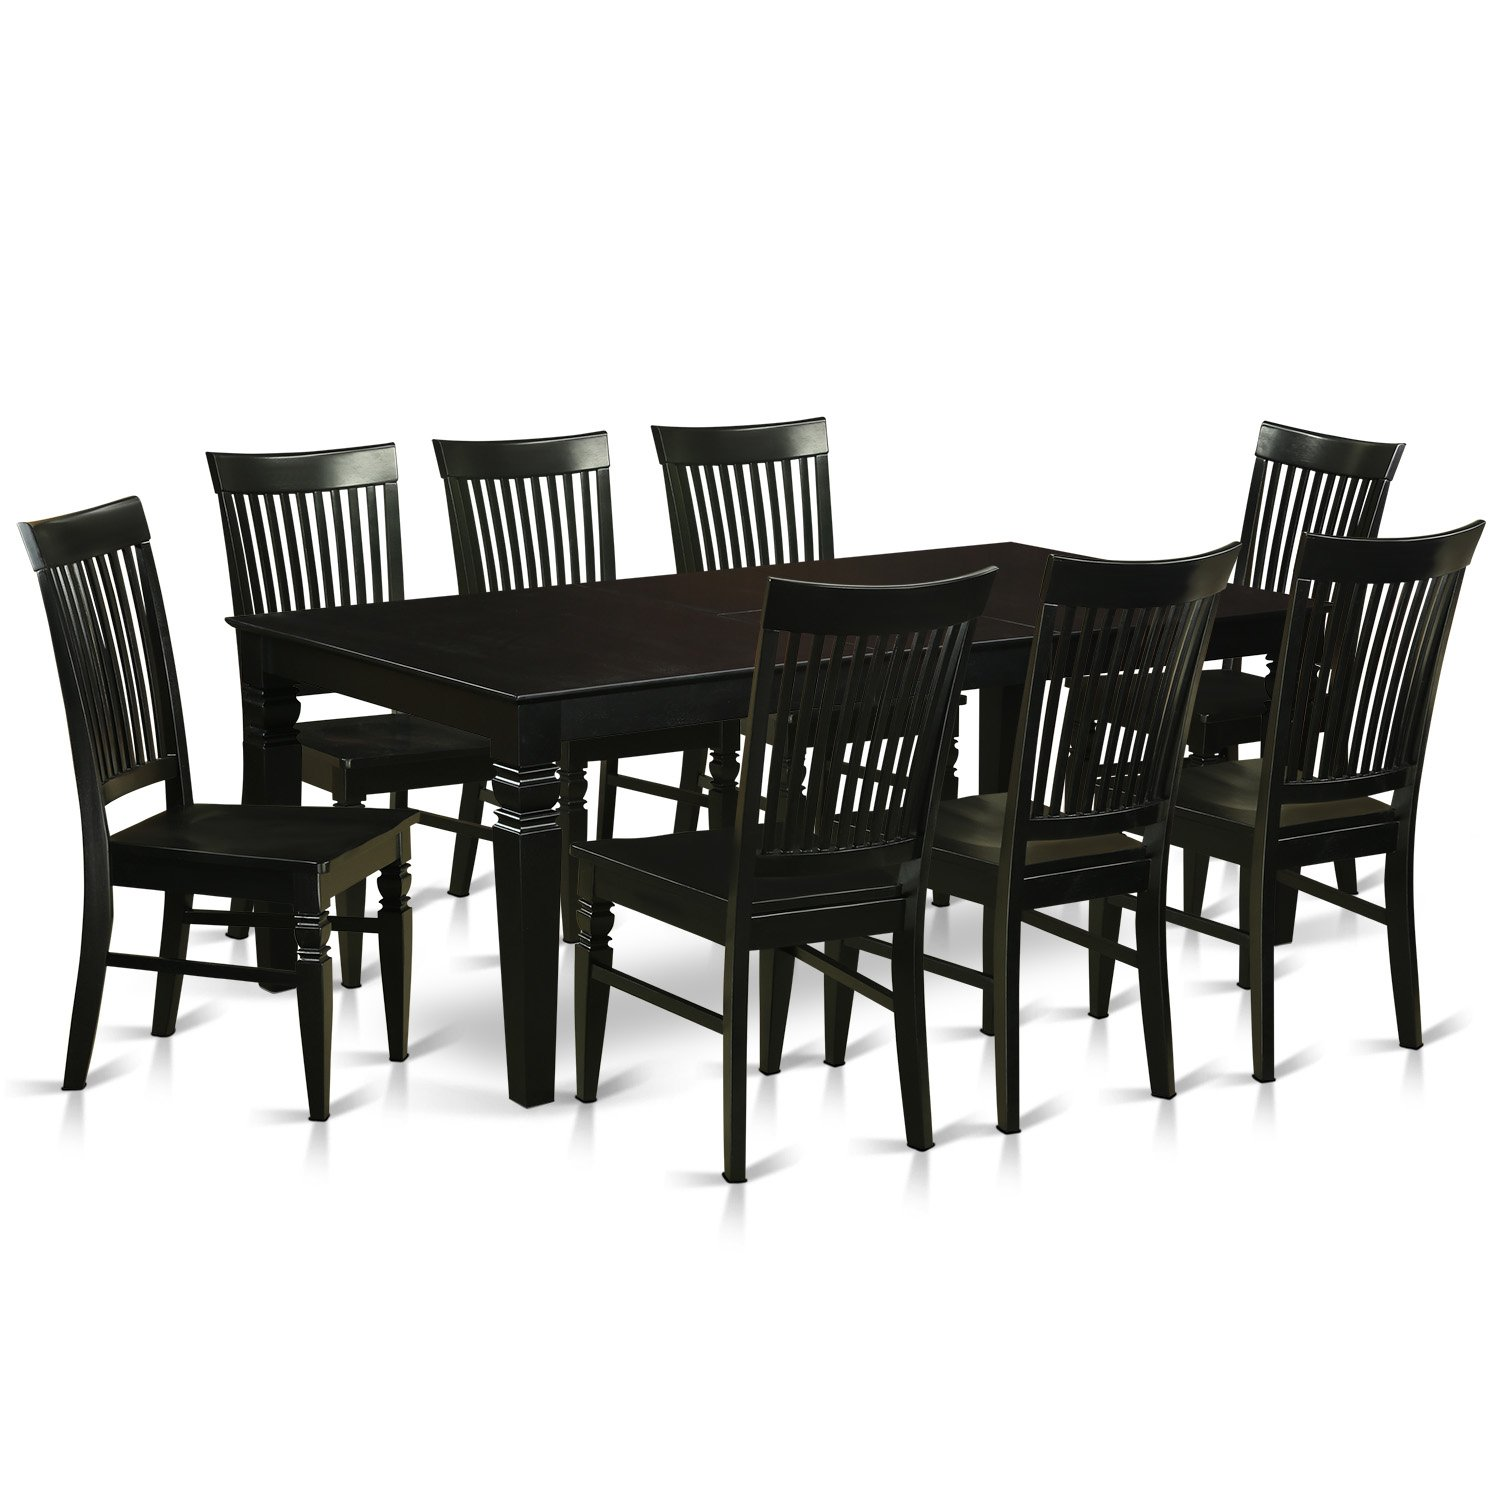 East West Furniture LGWE9-BLK-W 9 Piece Dining Table and 8 Wood Kitchen Chairs, Black